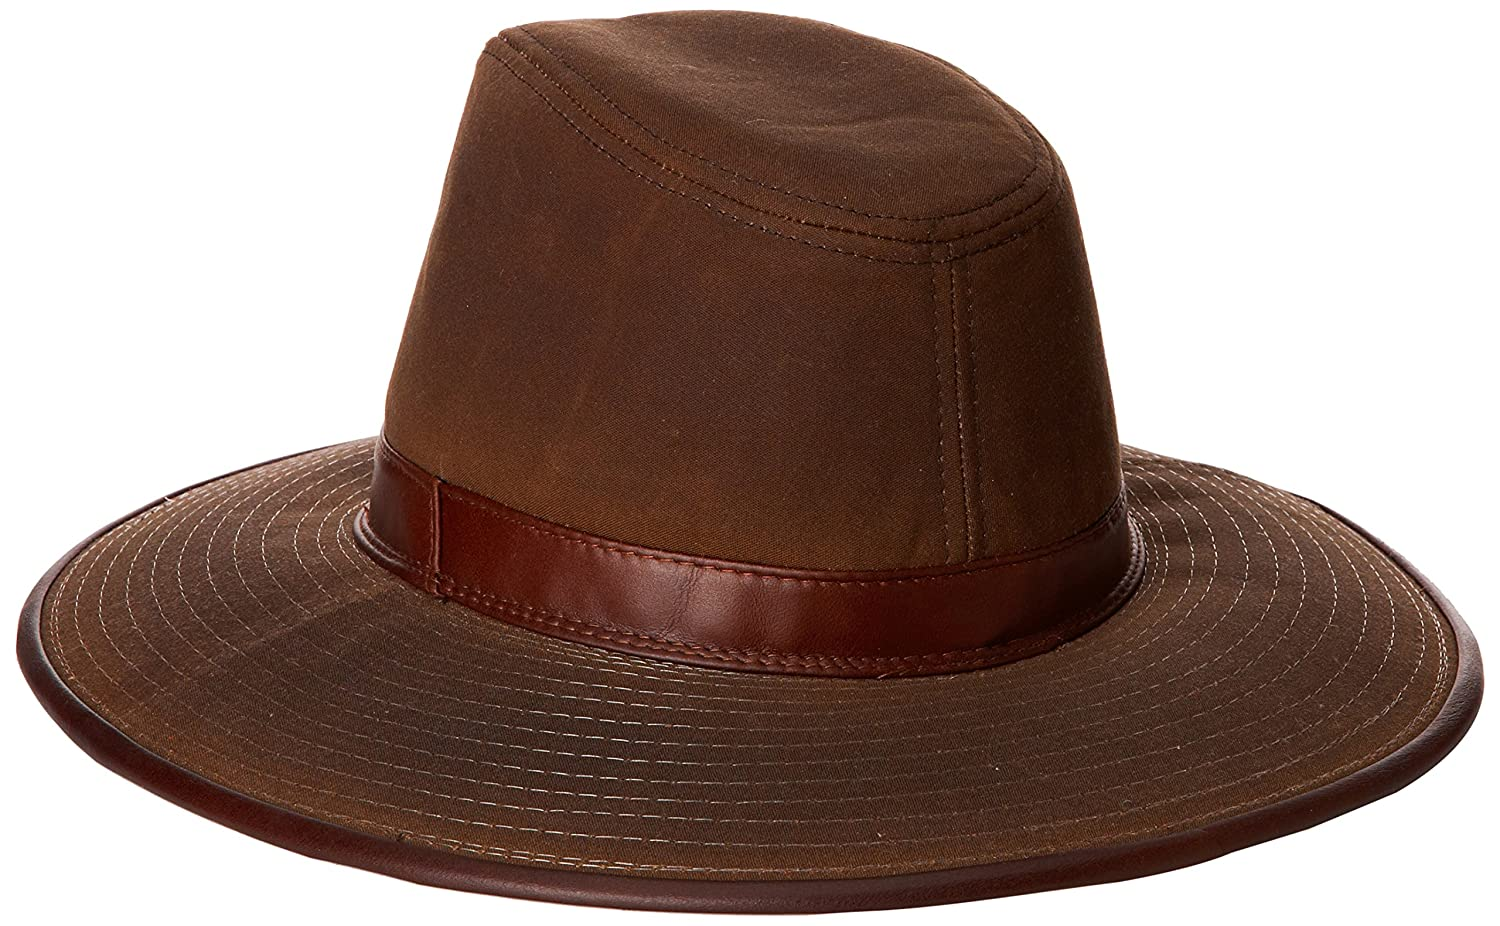 Dorfman Pacific Men s Oil Cloth Safari Hat With Leather Trim at Amazon  Men s Clothing store  Cowboy Hats 2eb2bb370985